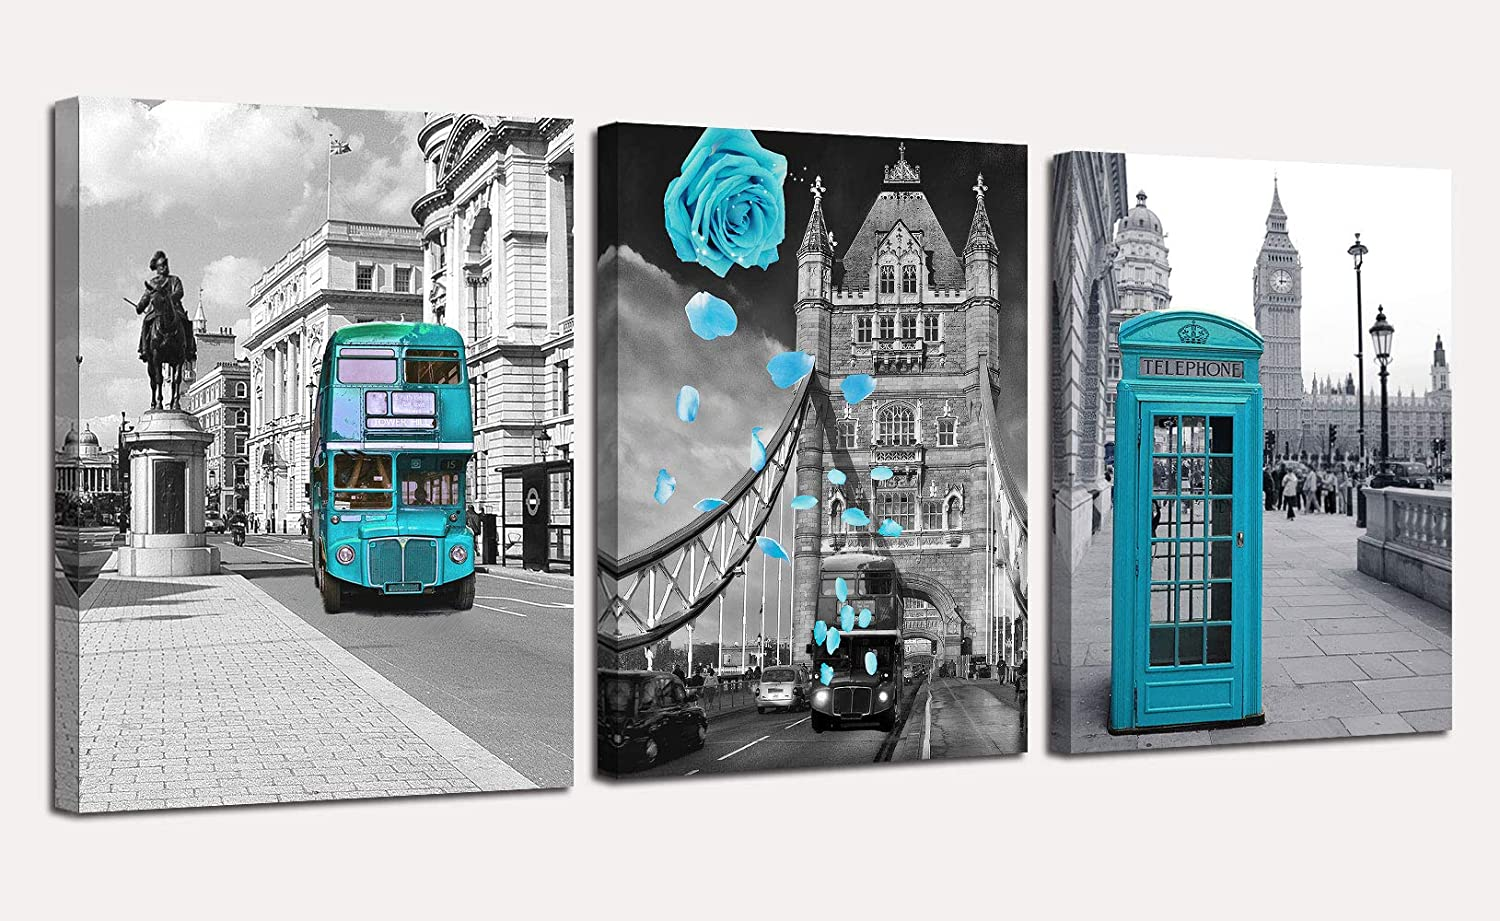 "Canvas Wall Art Teal London Cityscape Blue Rose Pictures Bus City View Painting, Turquoise Modern 16""x20"" x3 Panels Romantic Artwork Framed for Bedroom Living Room Kitchen Wall Decor"